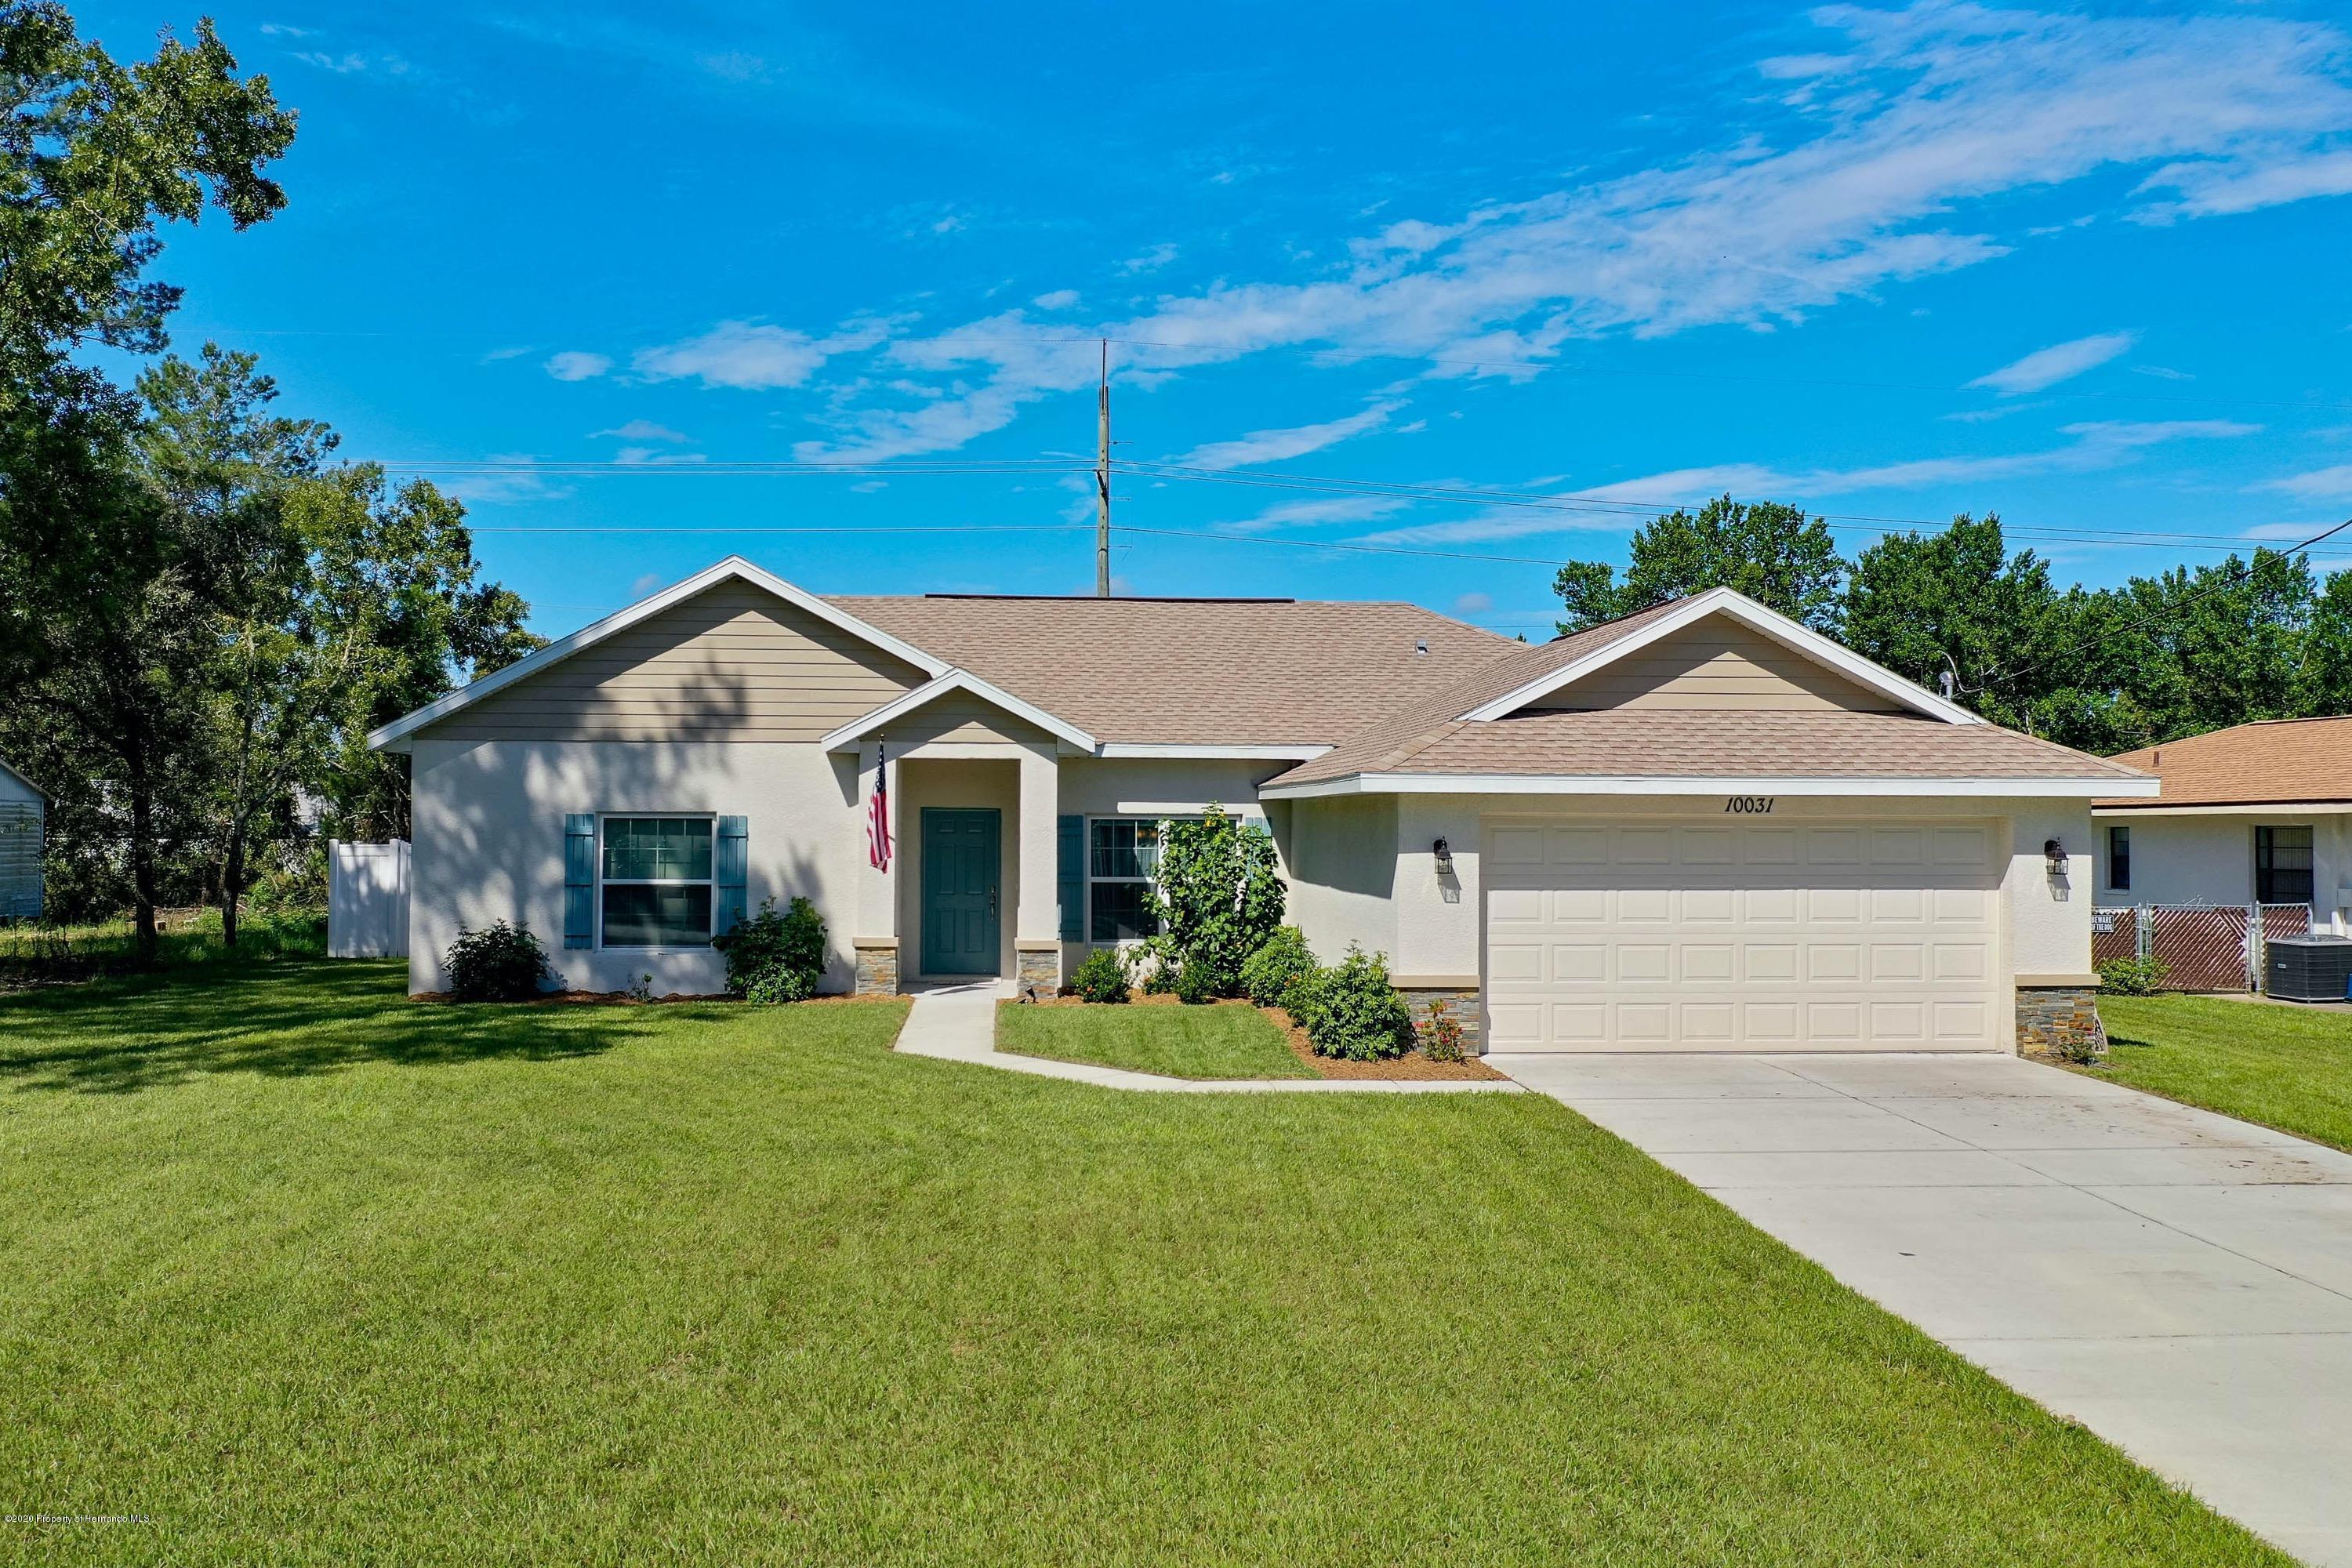 Details for 10031 Gifford Drive, Spring Hill, FL 34608